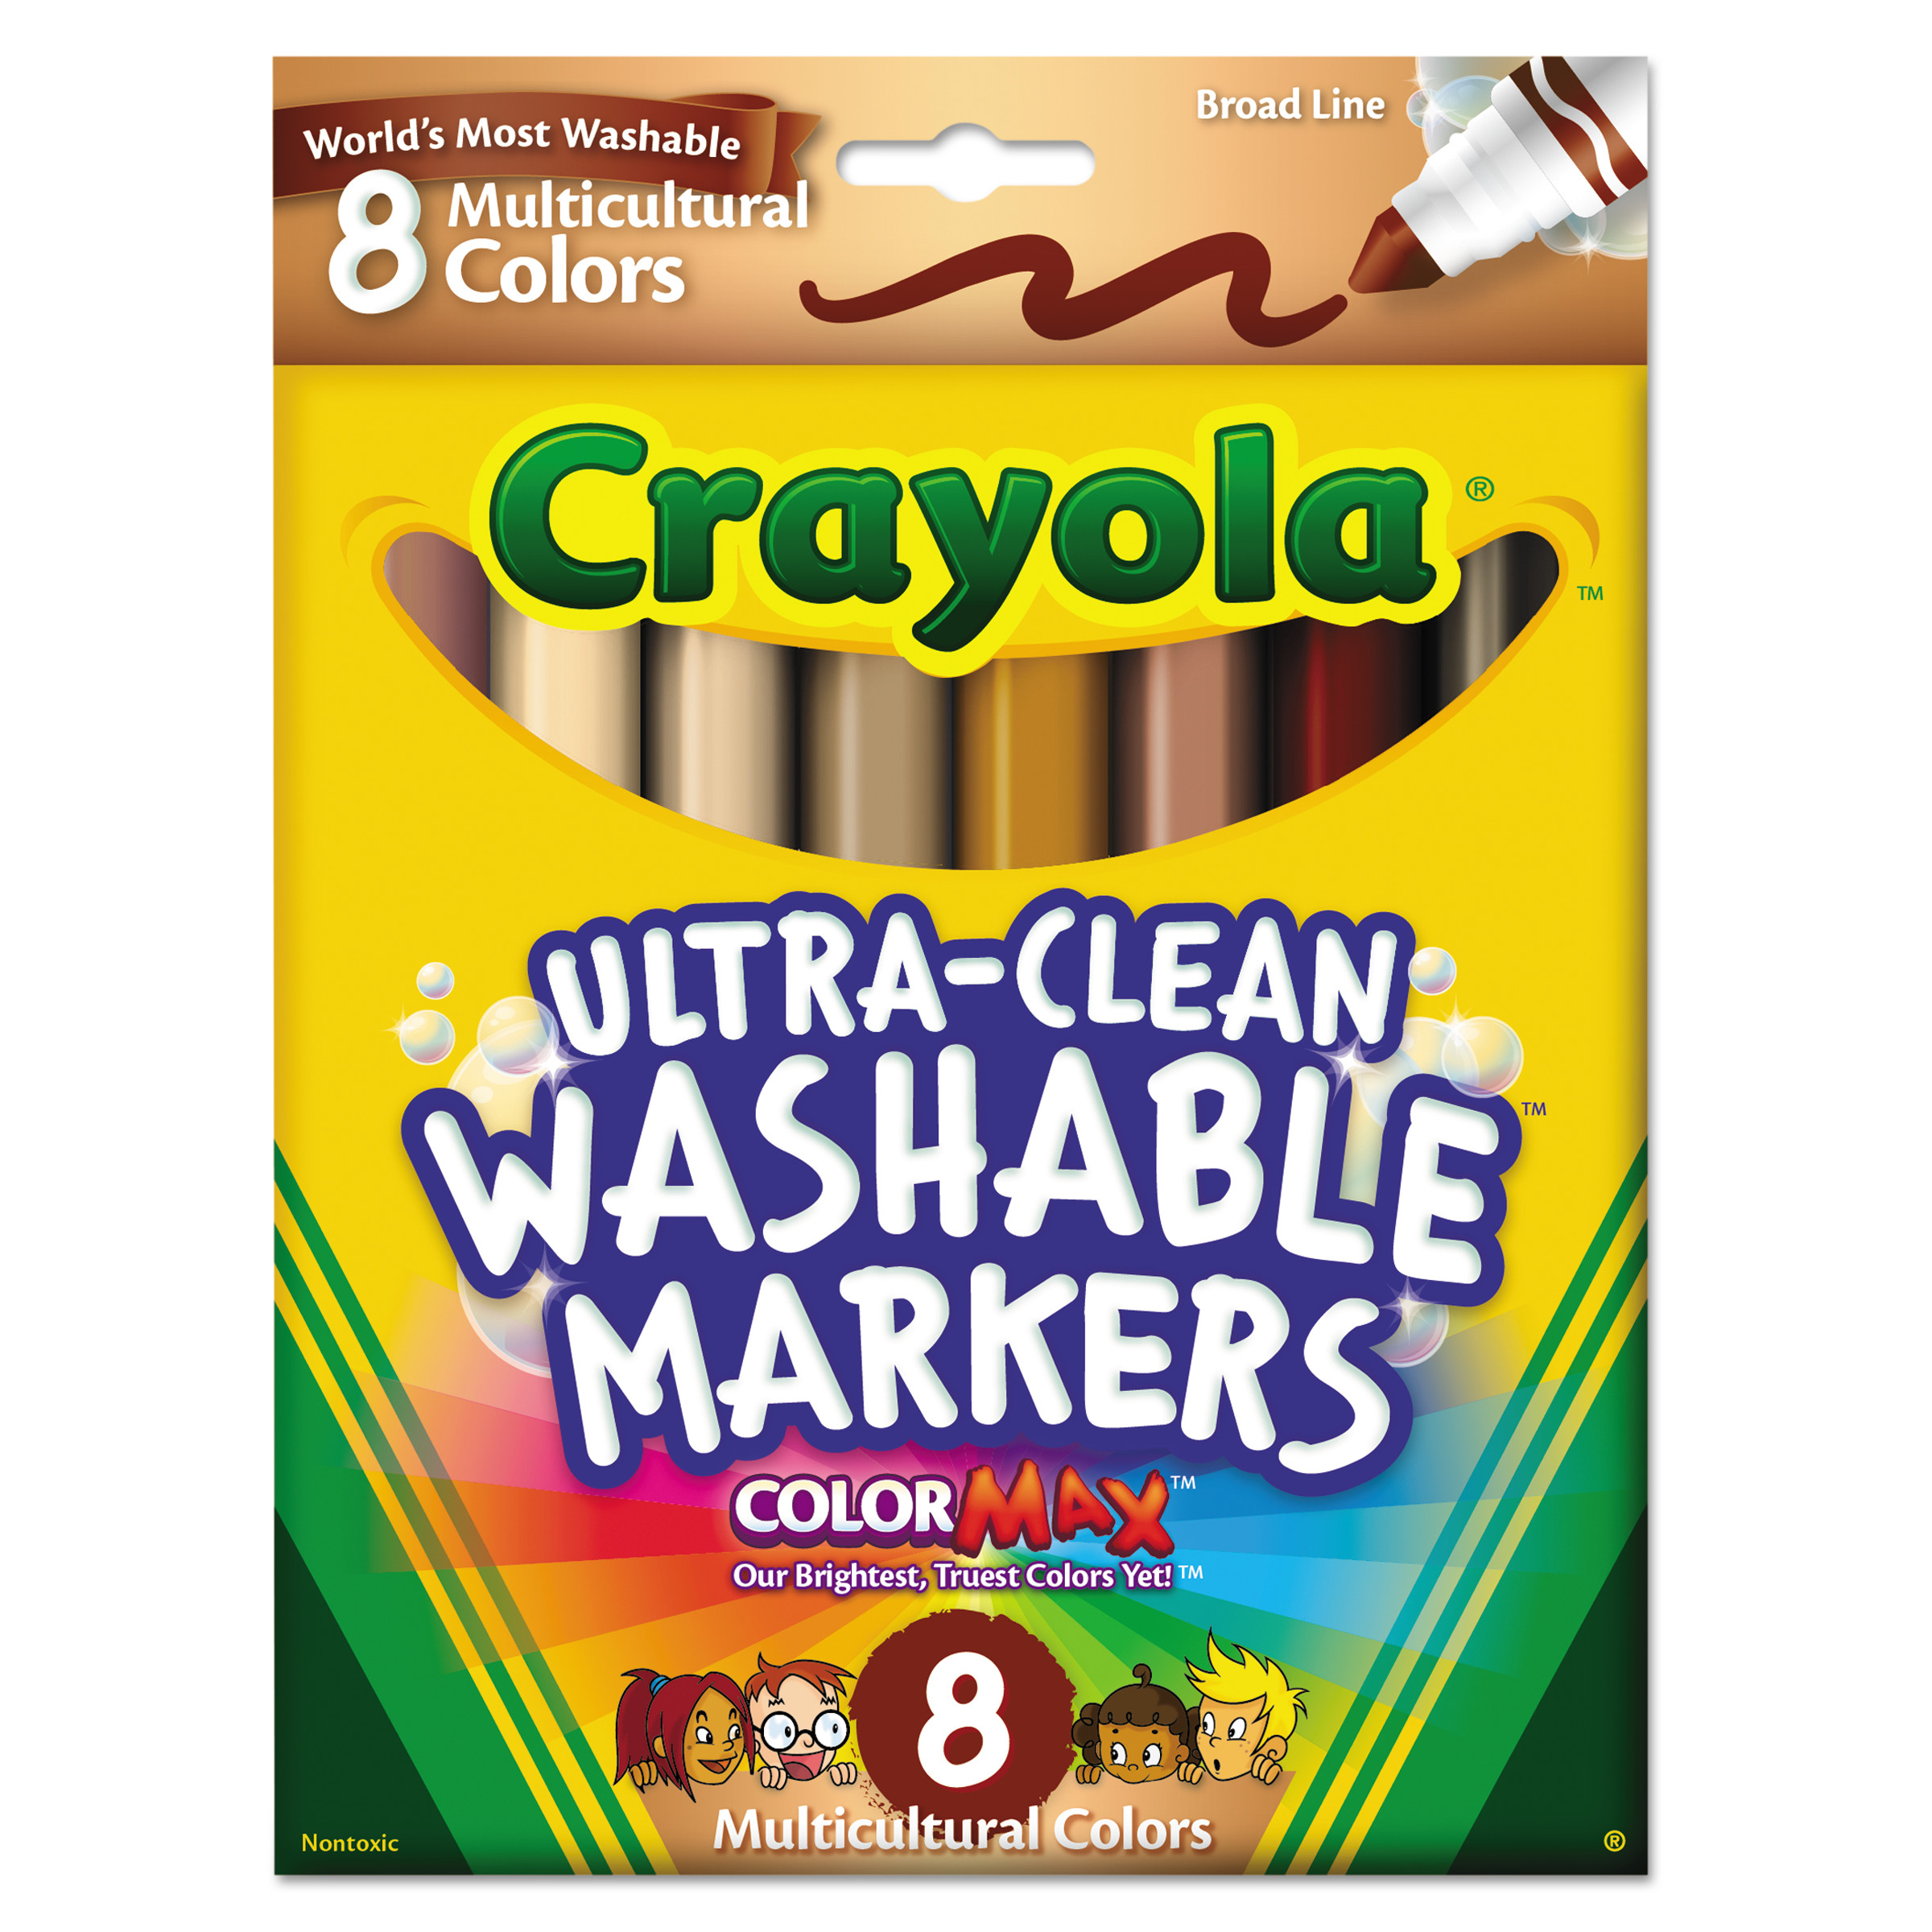 Crayola Washable Markers, Conical Point, Multicultural Colors, 8/Pack -CYO587801